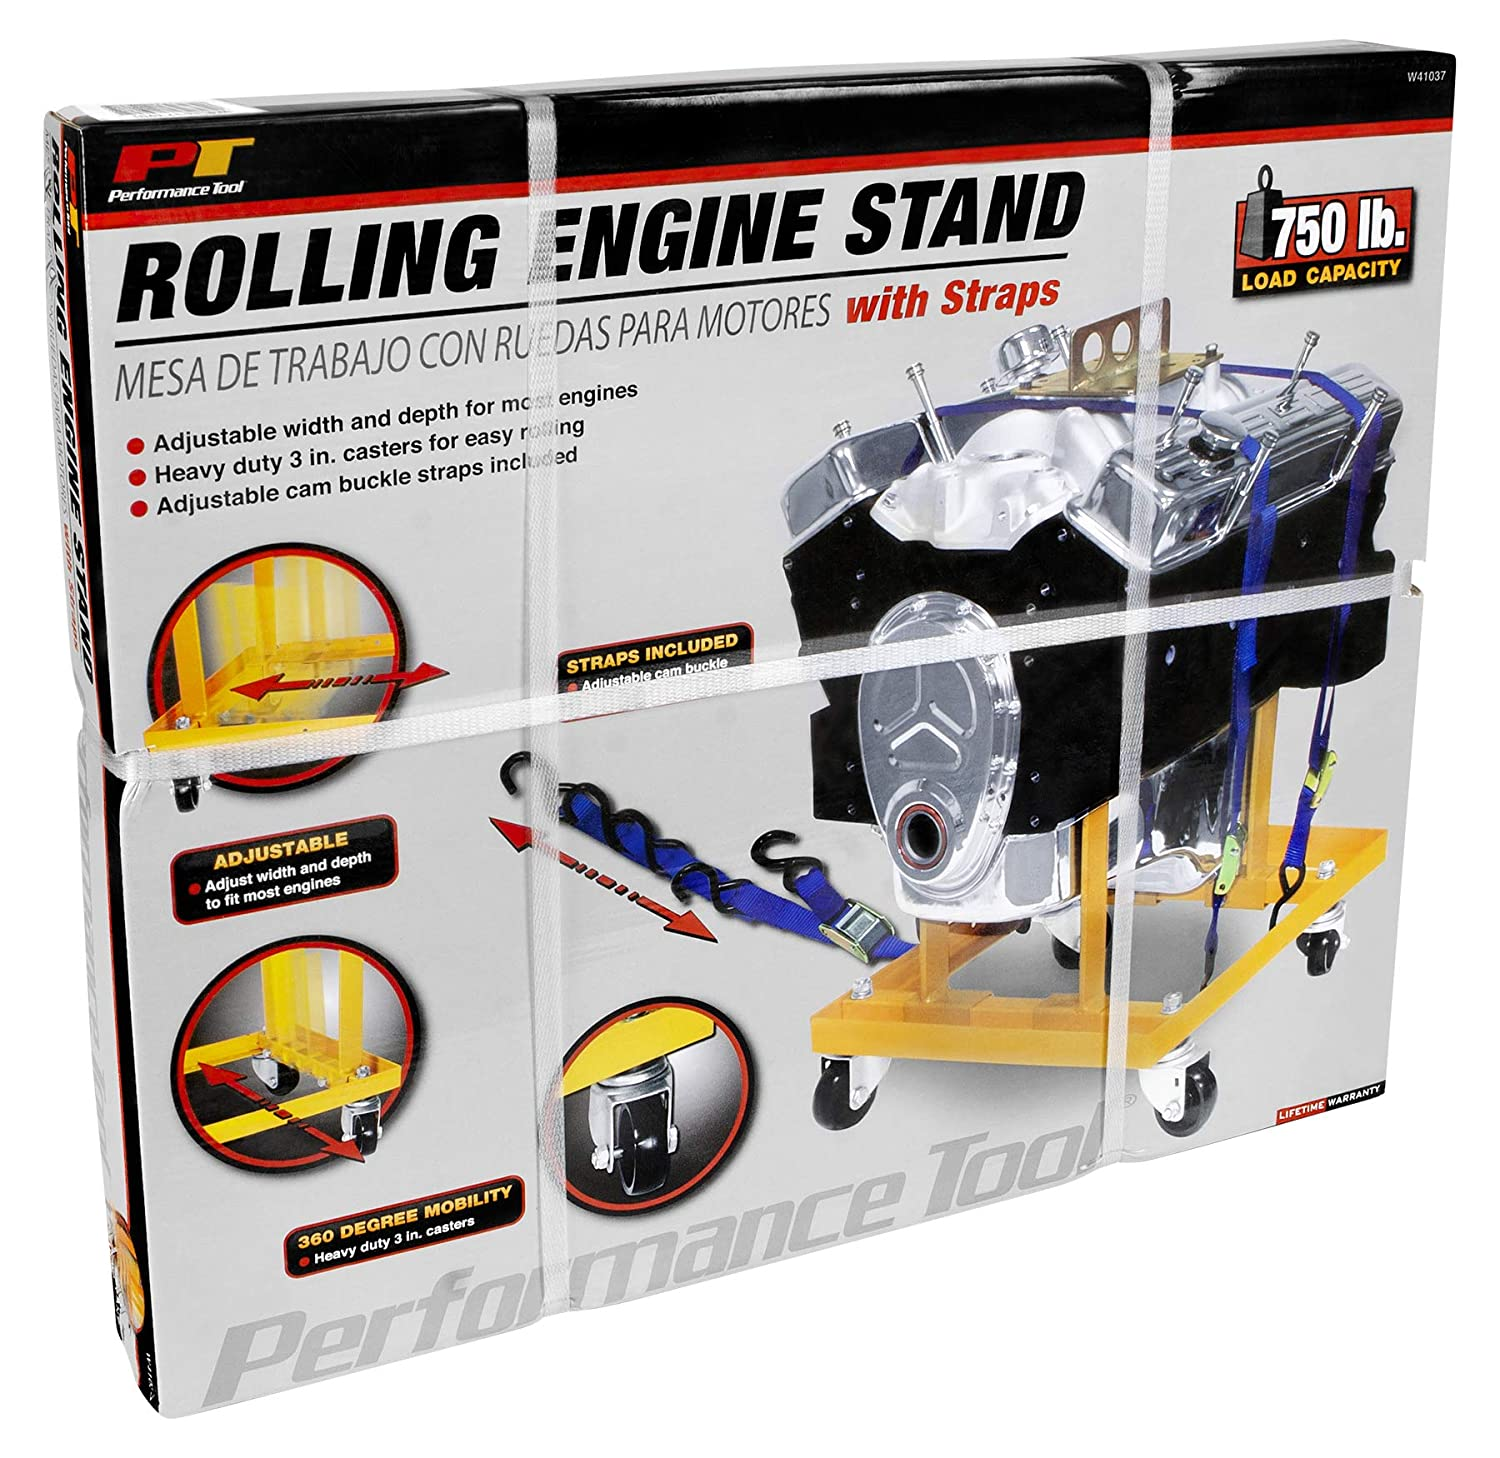 Amazon.com: Performance Tool W41037 Rolling Engine Stand with Straps - 750 lb. Capacity: Automotive